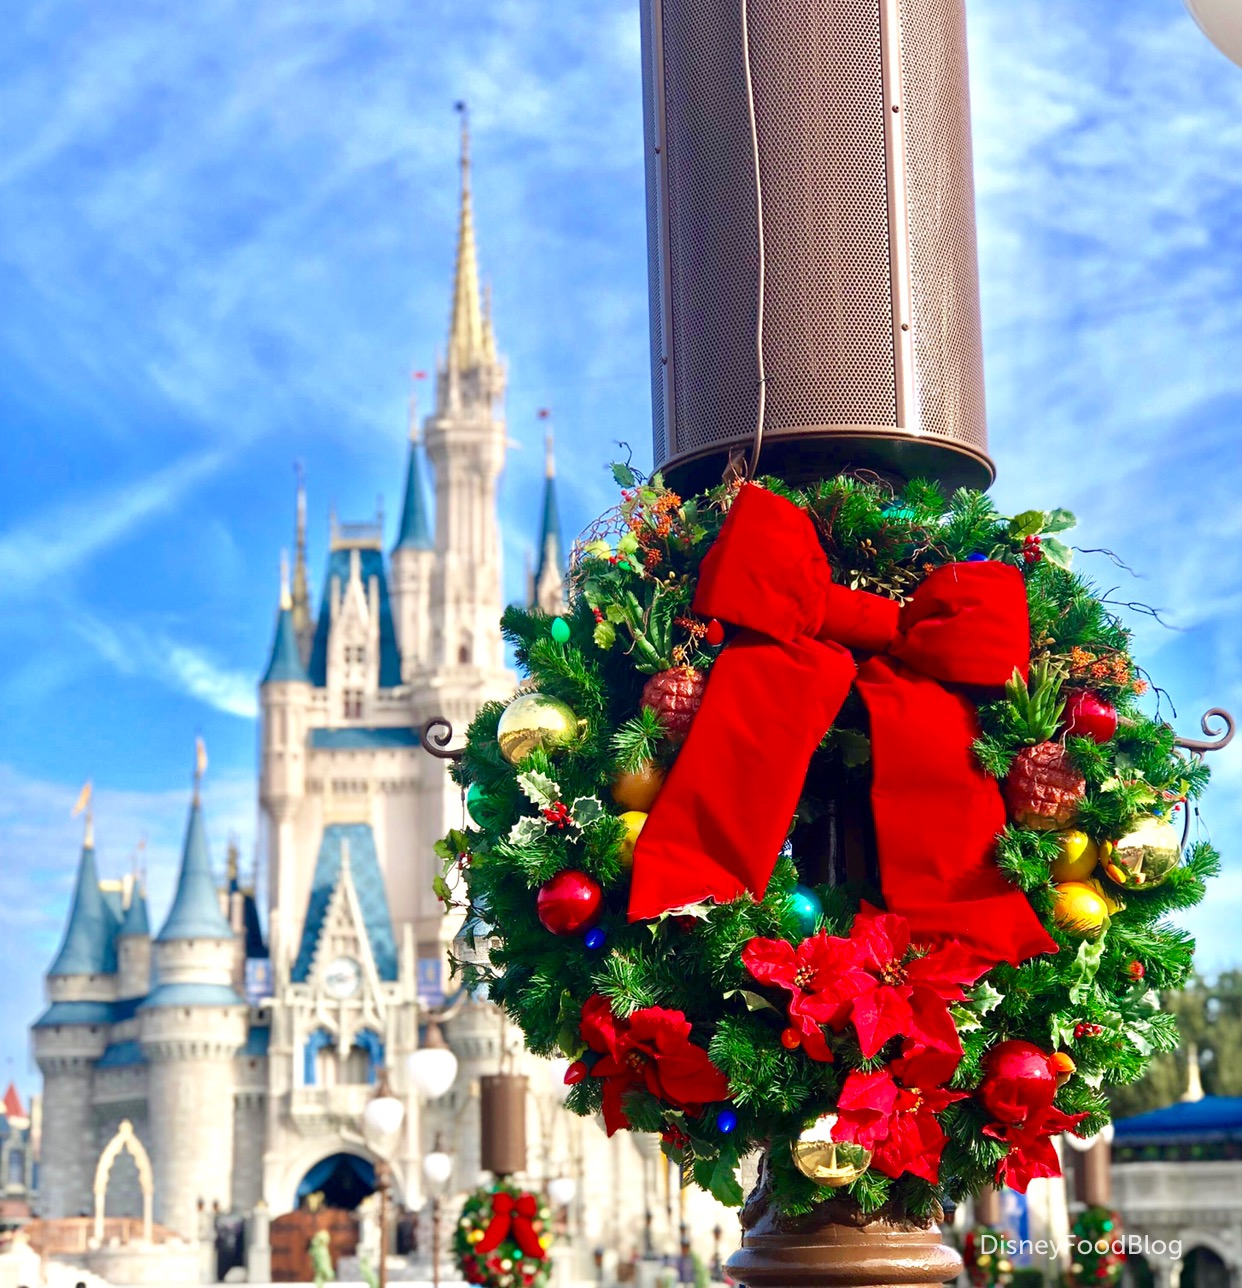 Spotted Have A Holly Jolly Christmas With Tomorrowland